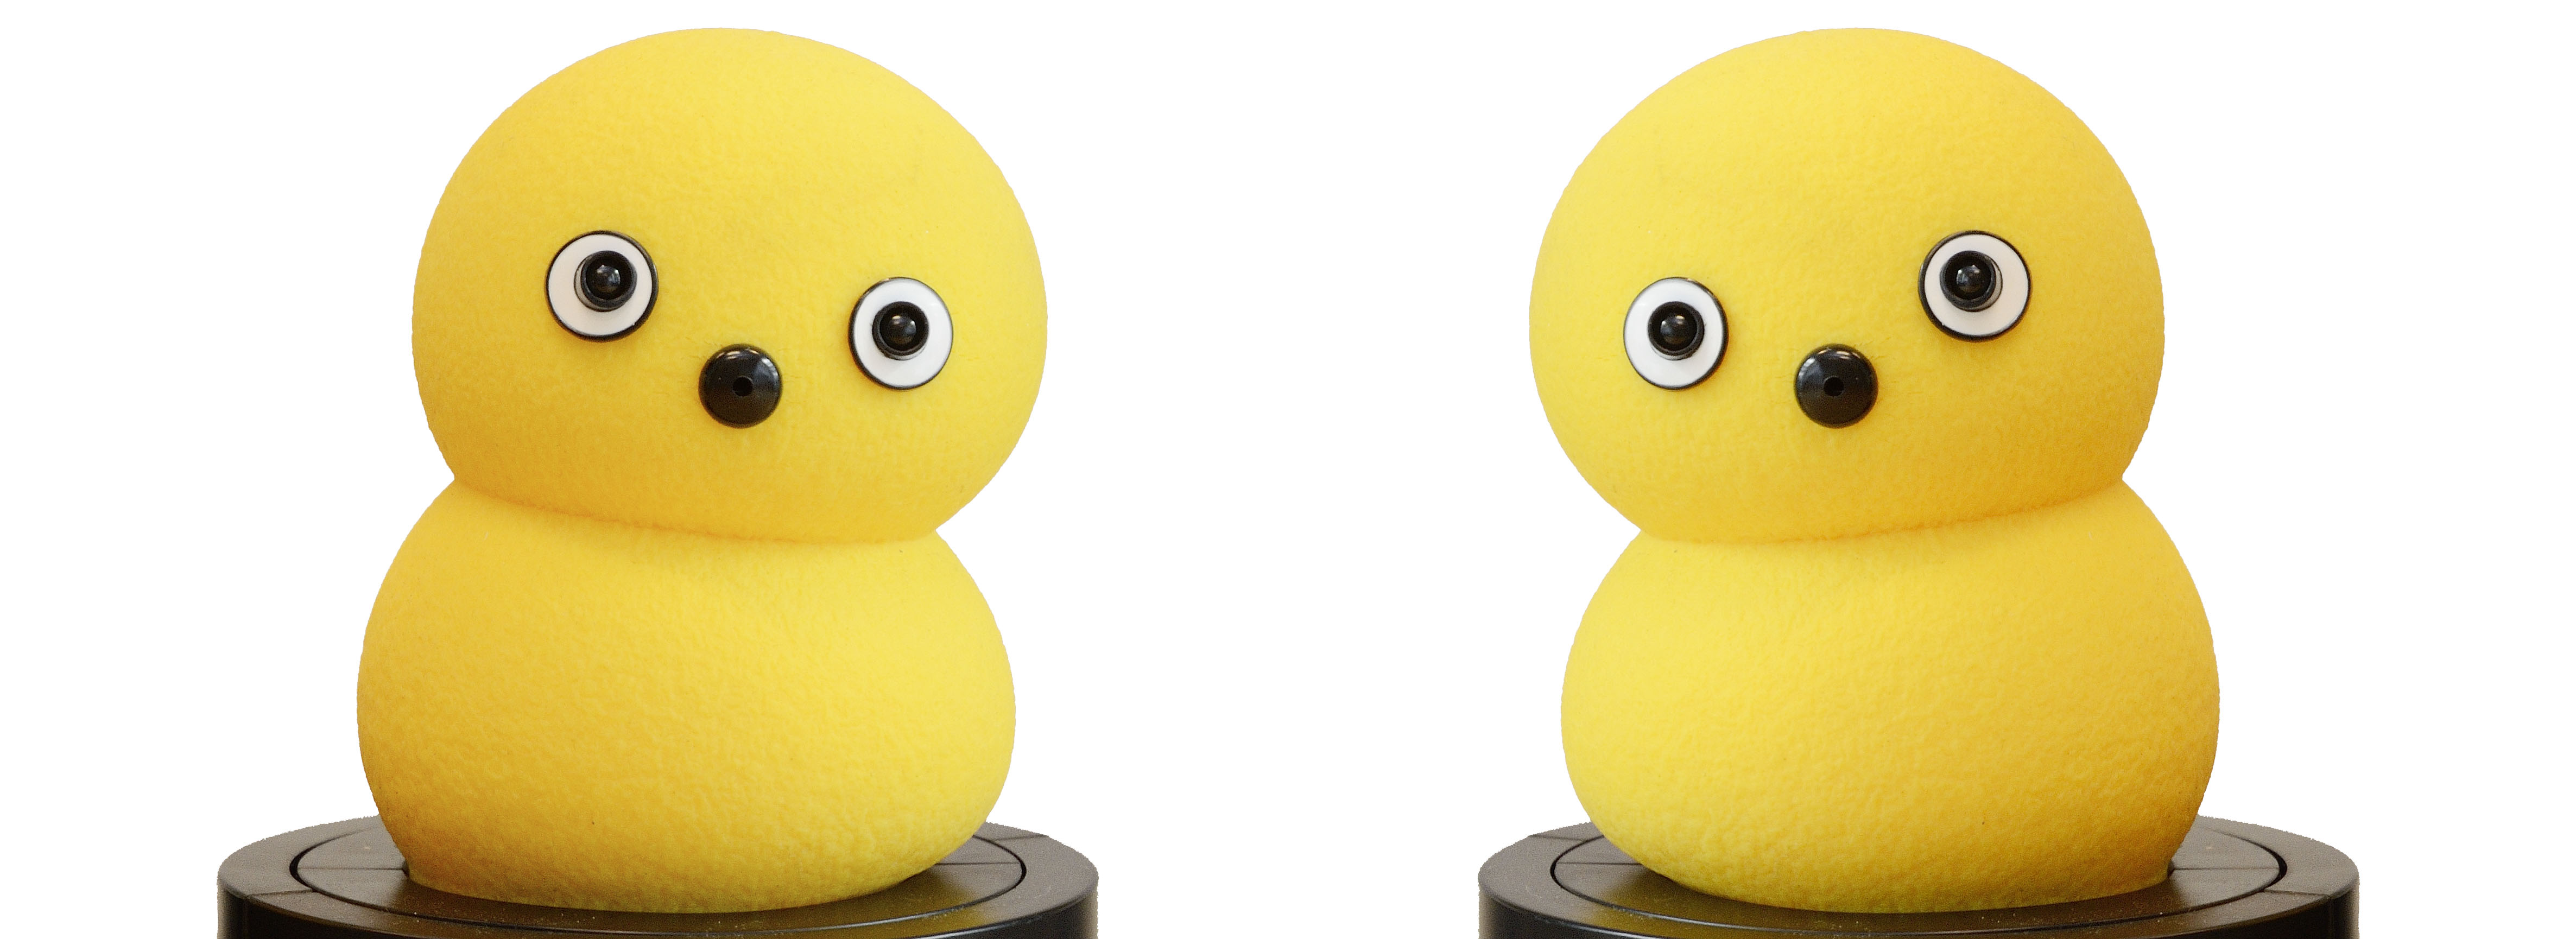 Two Keepon Robots